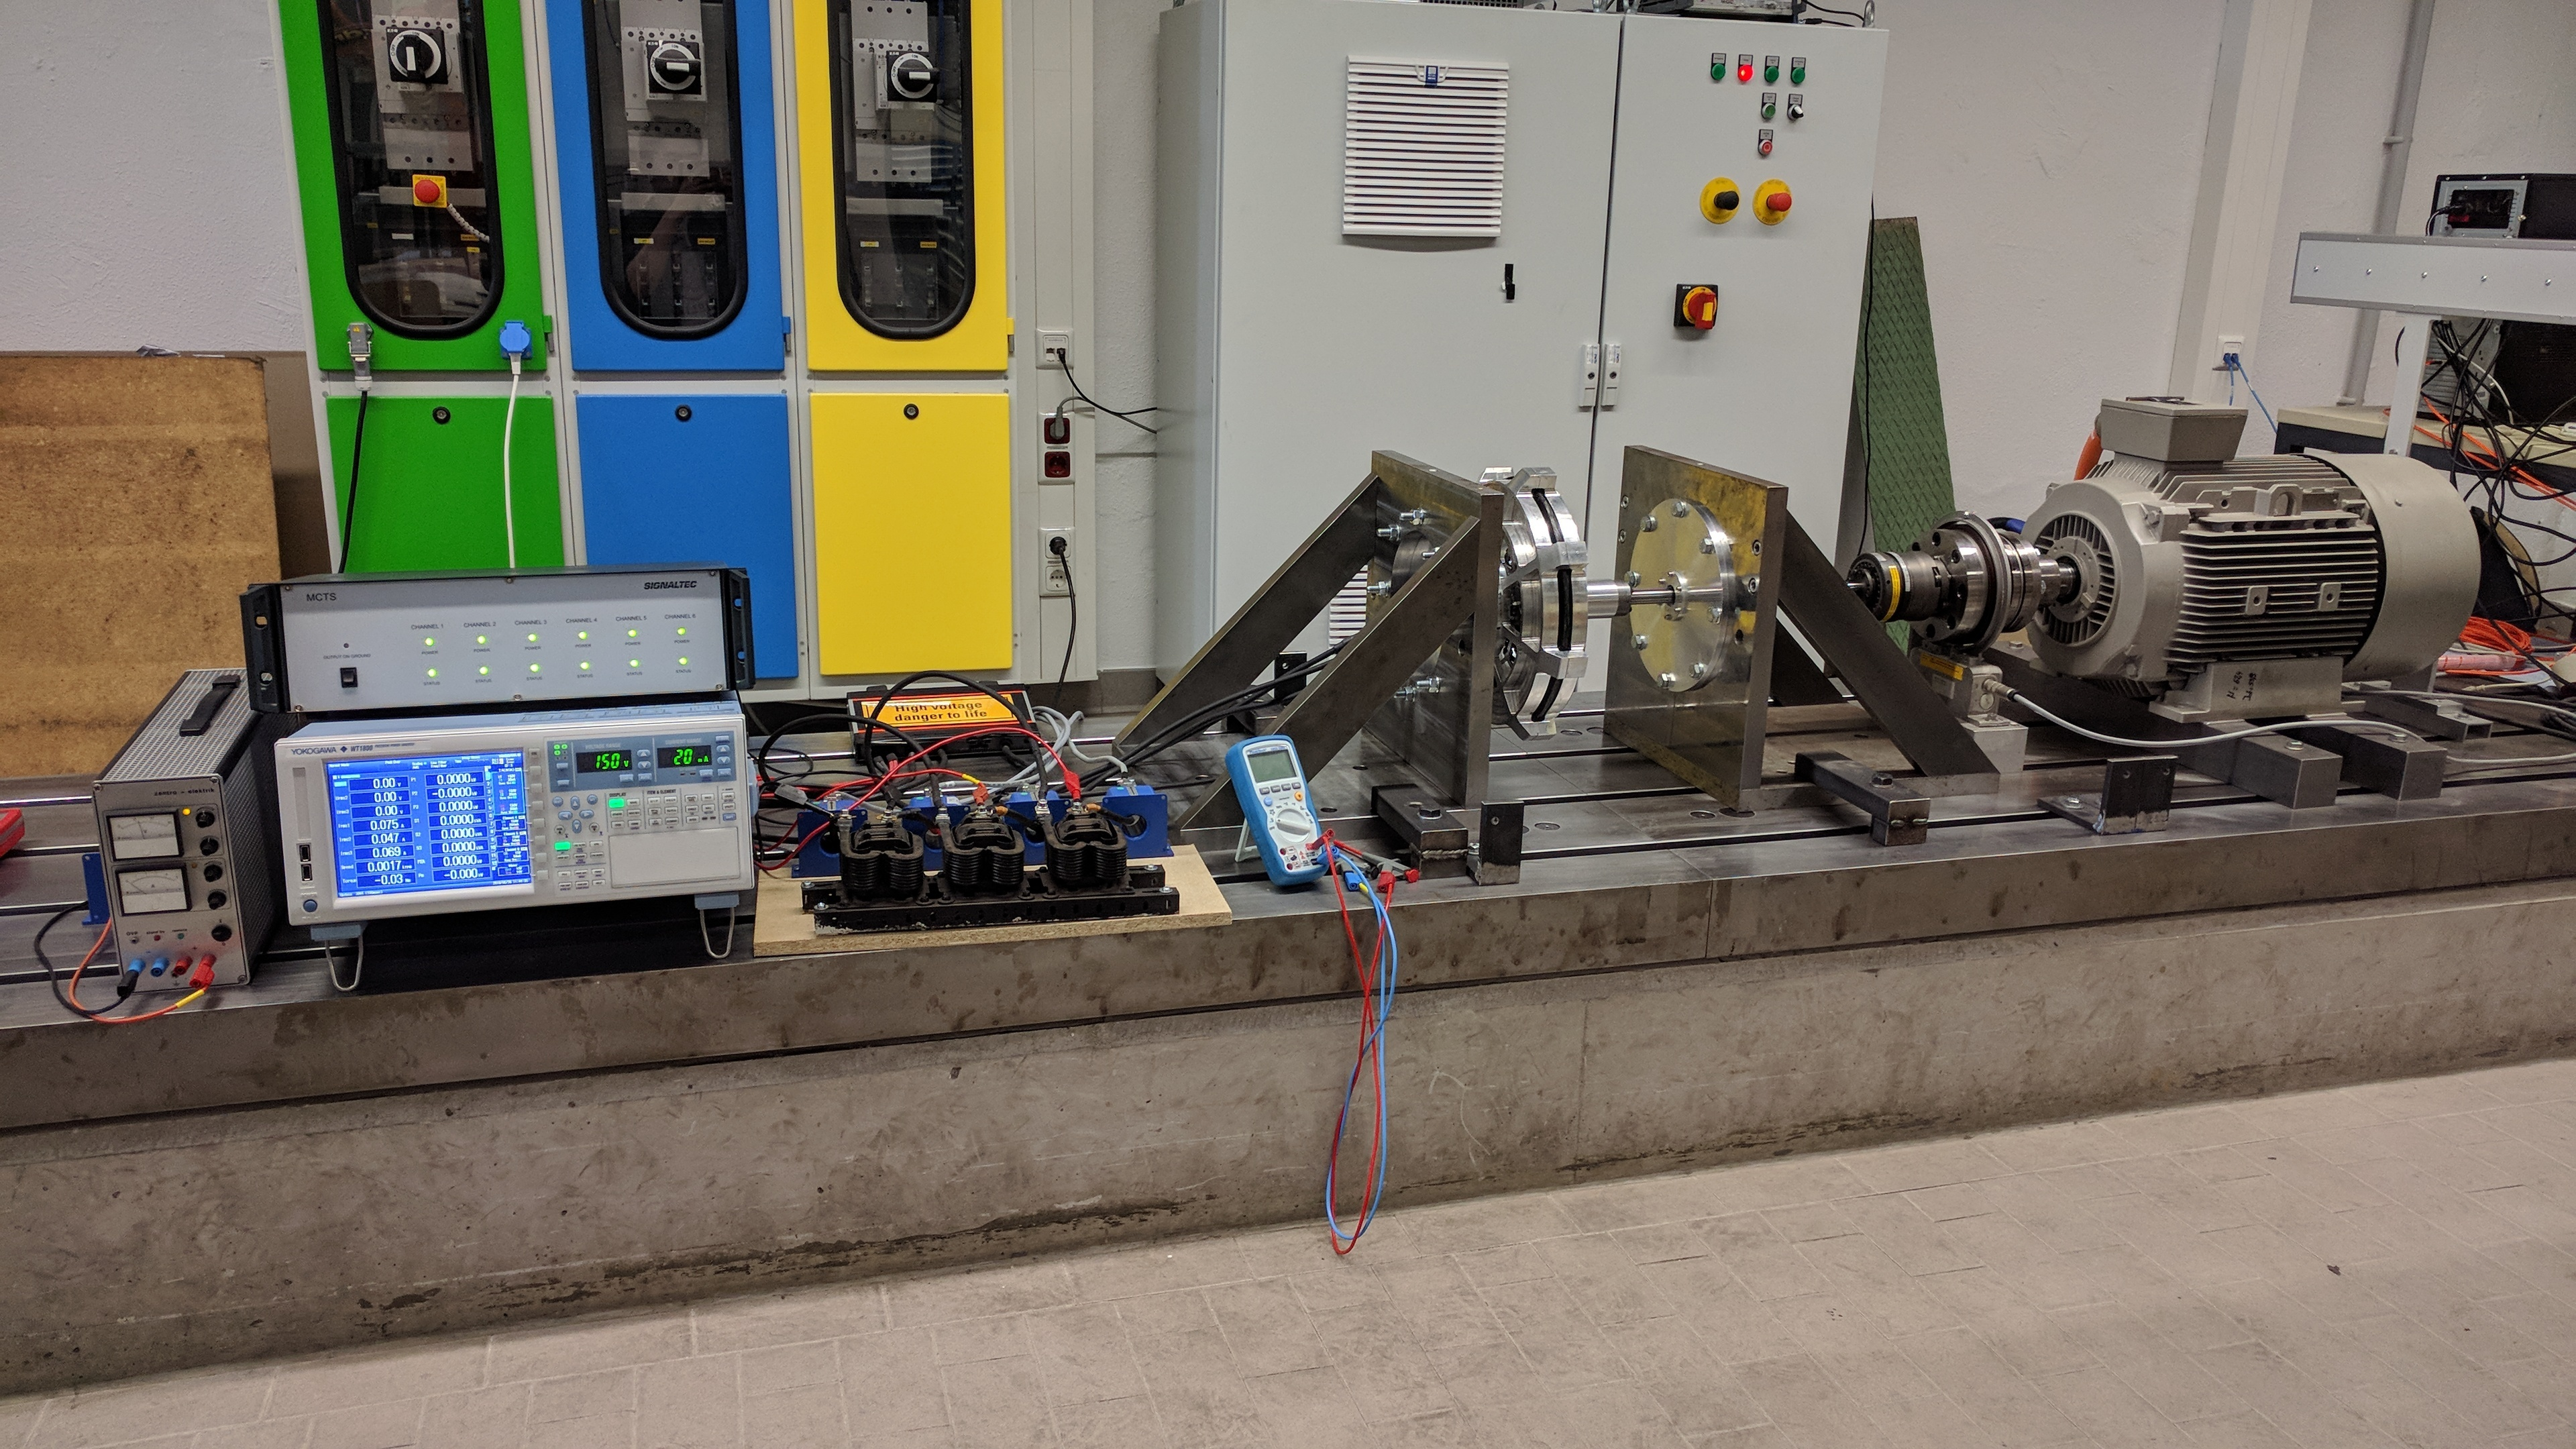 The test bench setup for the measurement of the electric motor at the IEM